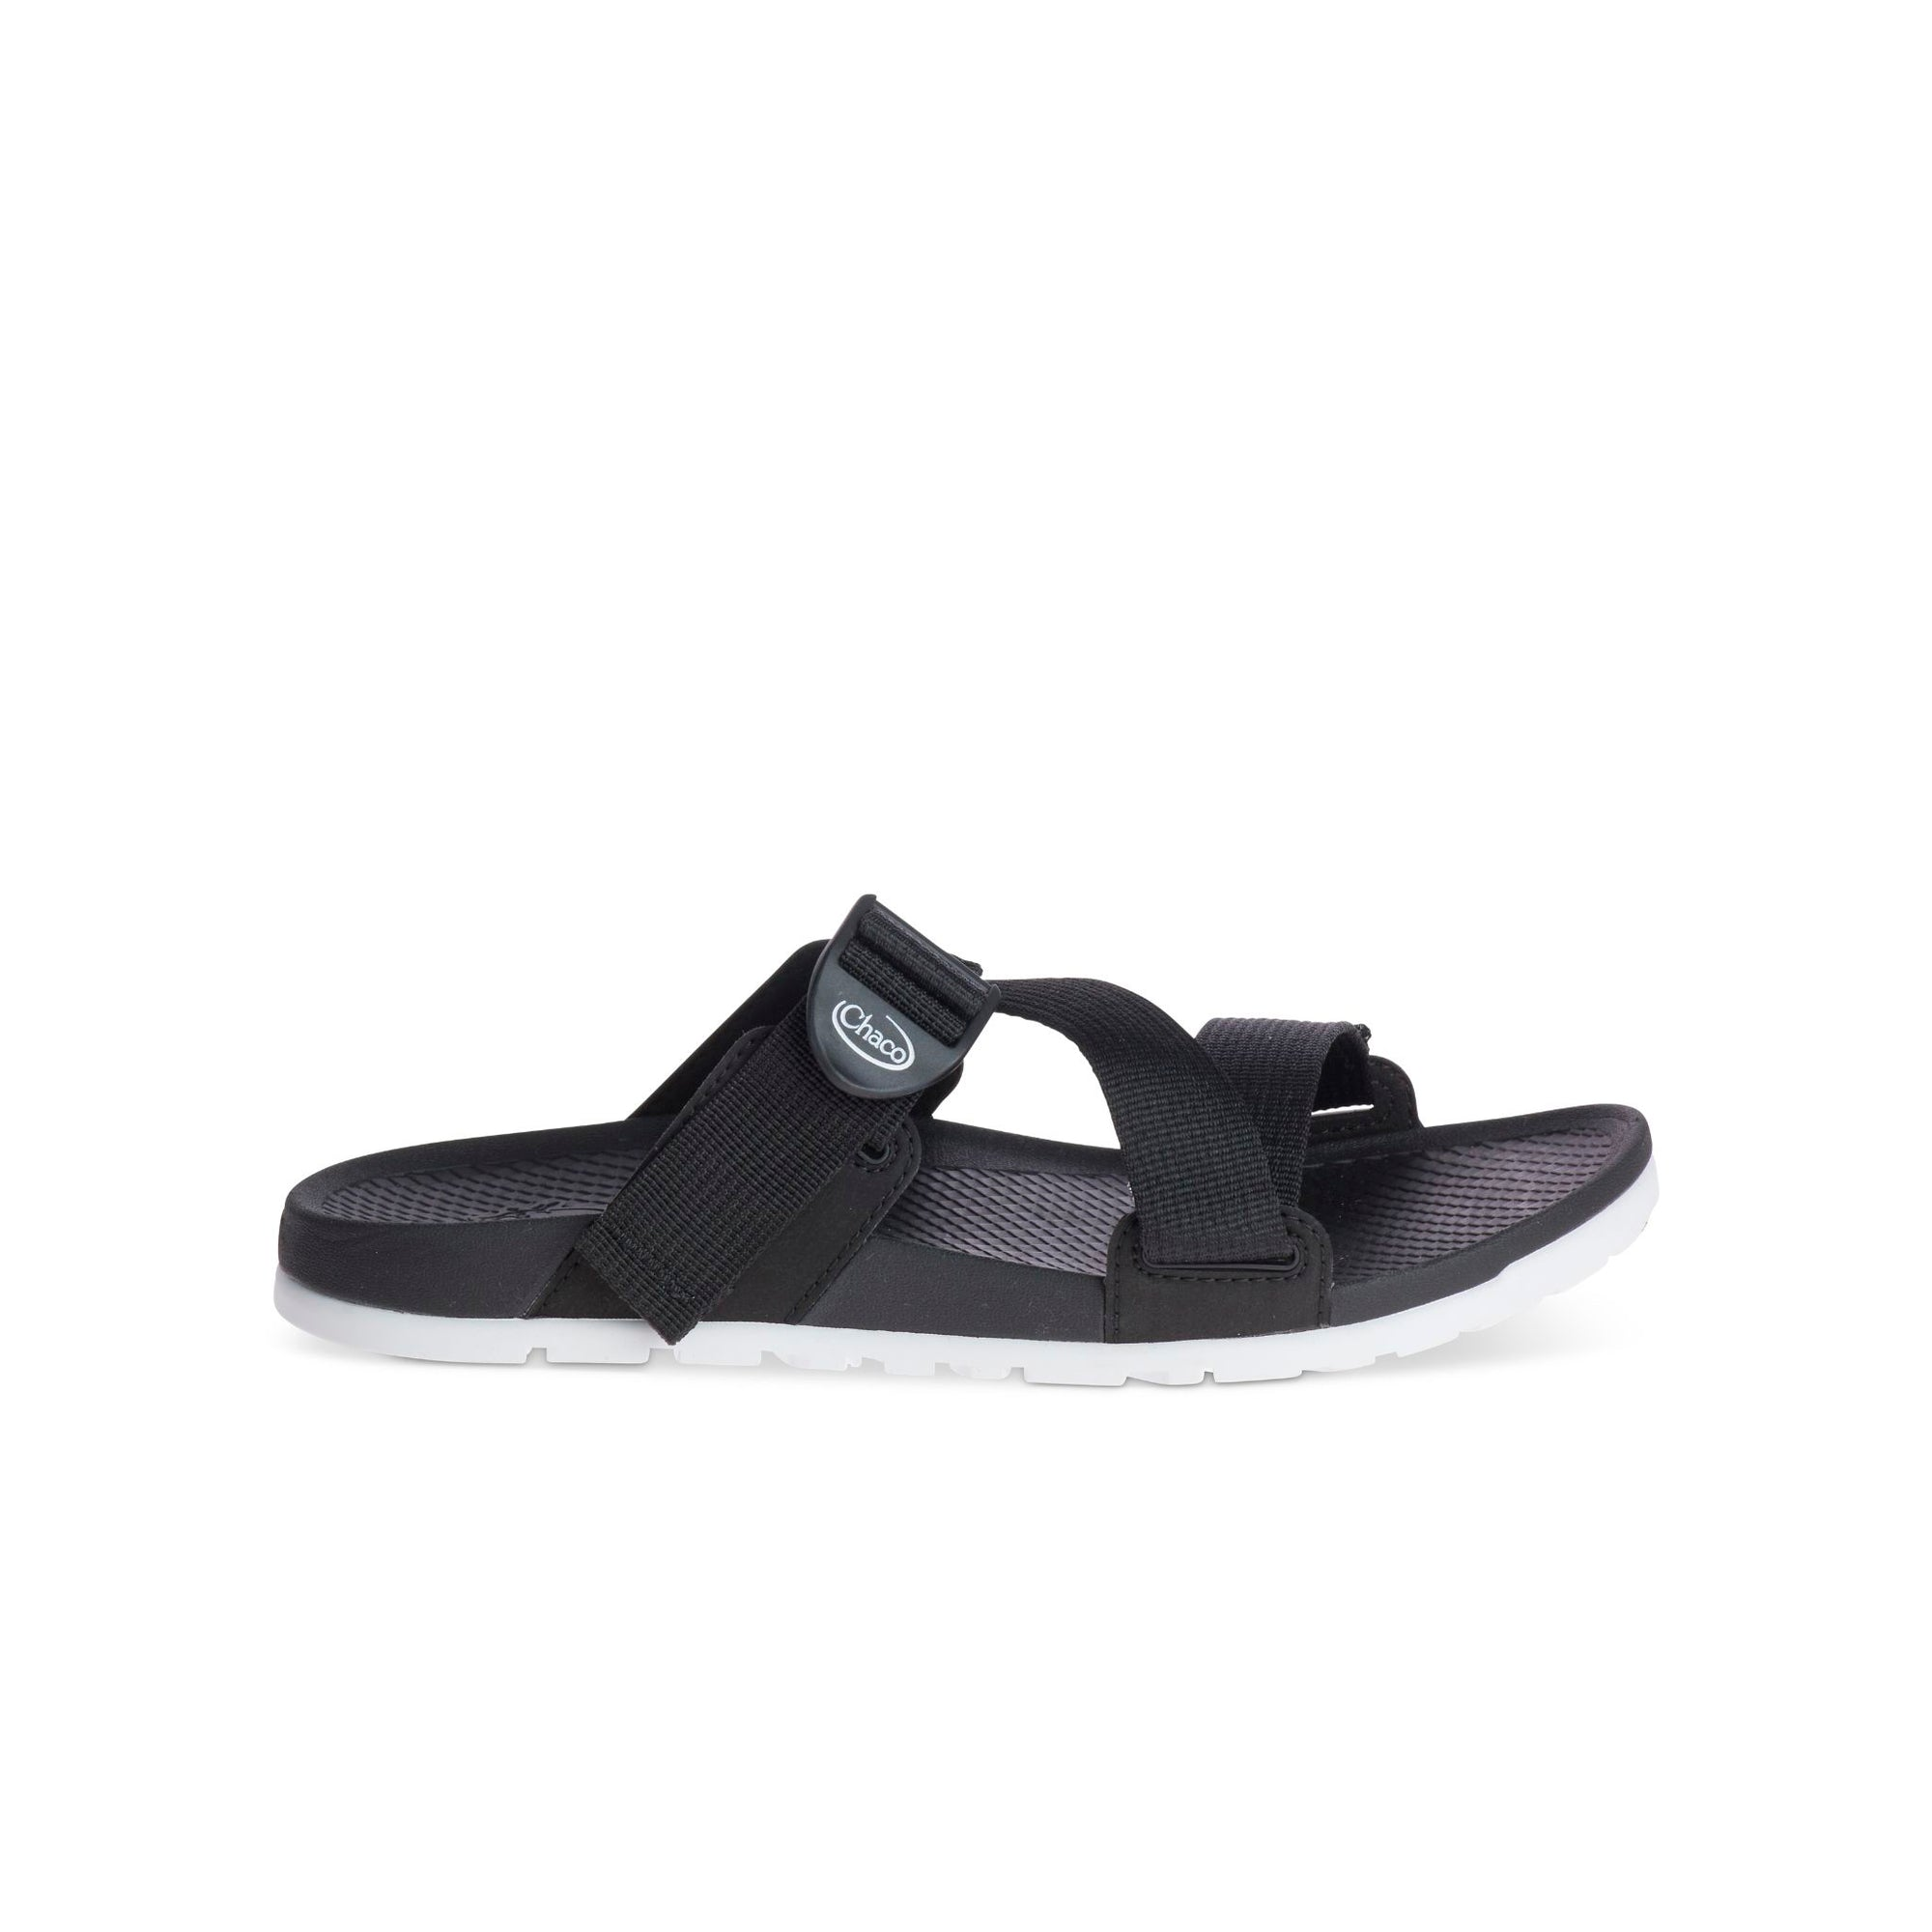 Chaco Womens Lowdown Slide: Black - The Union Project